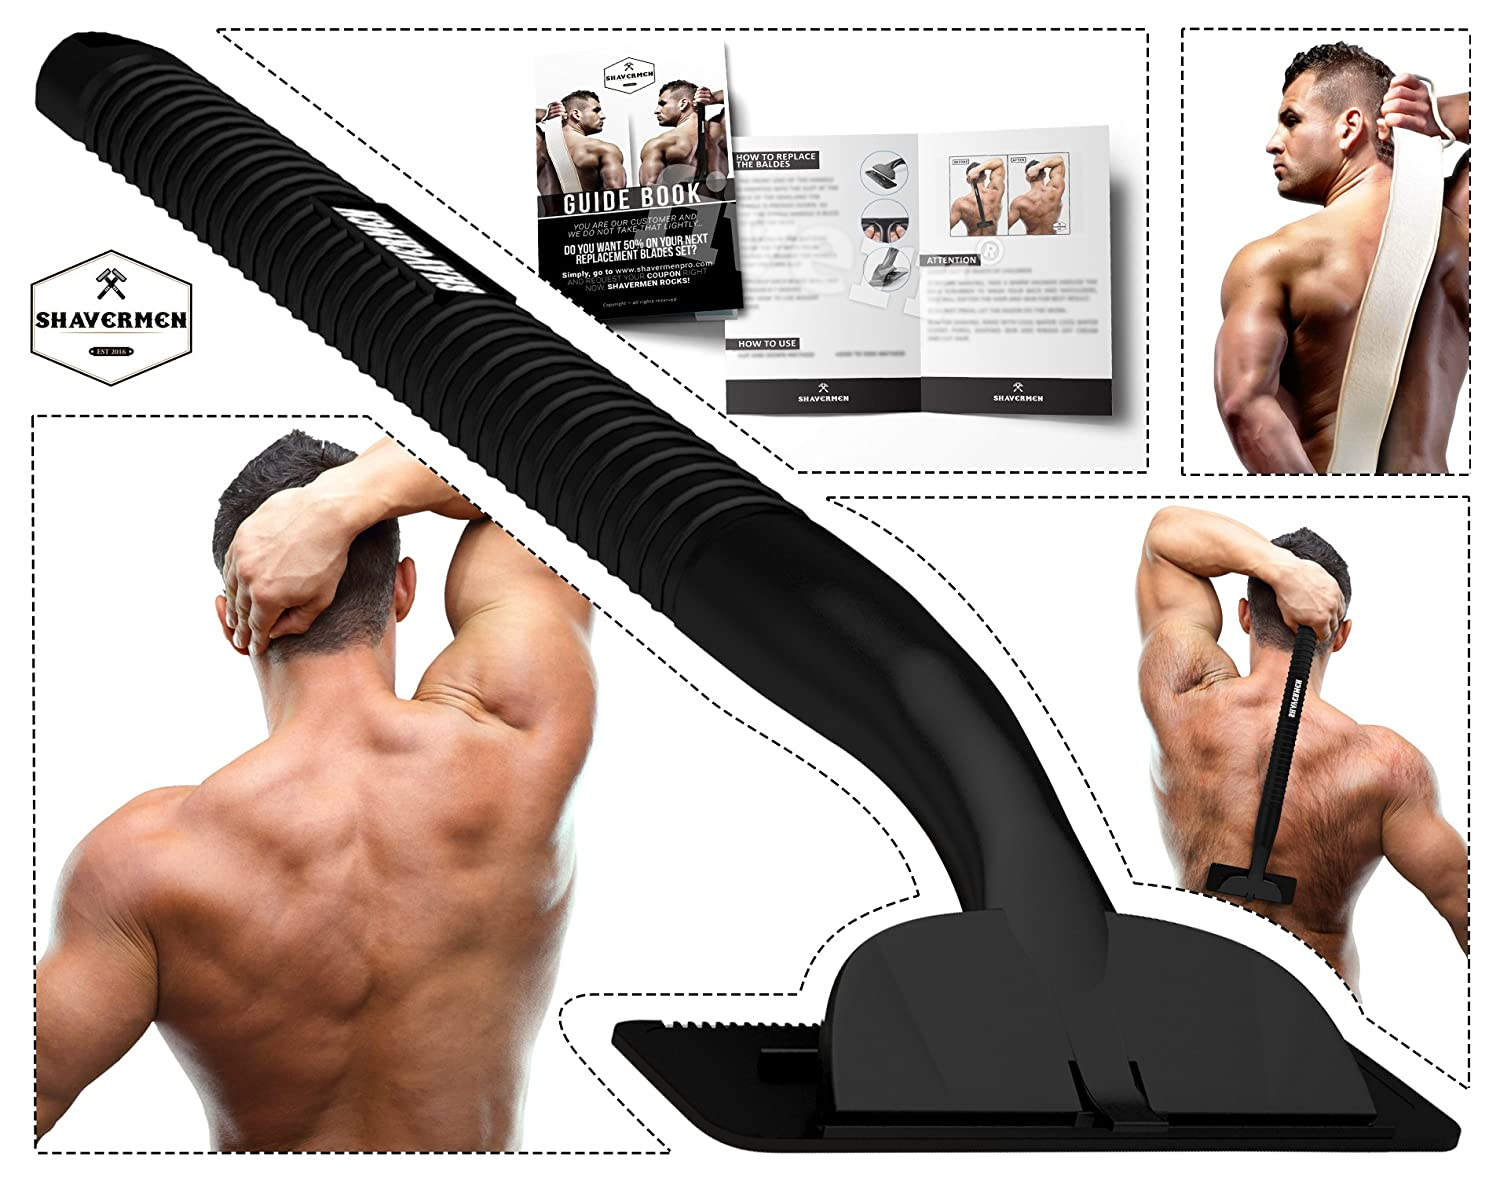 Back Shaver Razor for Men by Shavermen Back Hair Body Groomer Trimmer For Mens Do It Yourself Waterprooof Bodygroom . Guide Book and Bonus Back Scrubber included